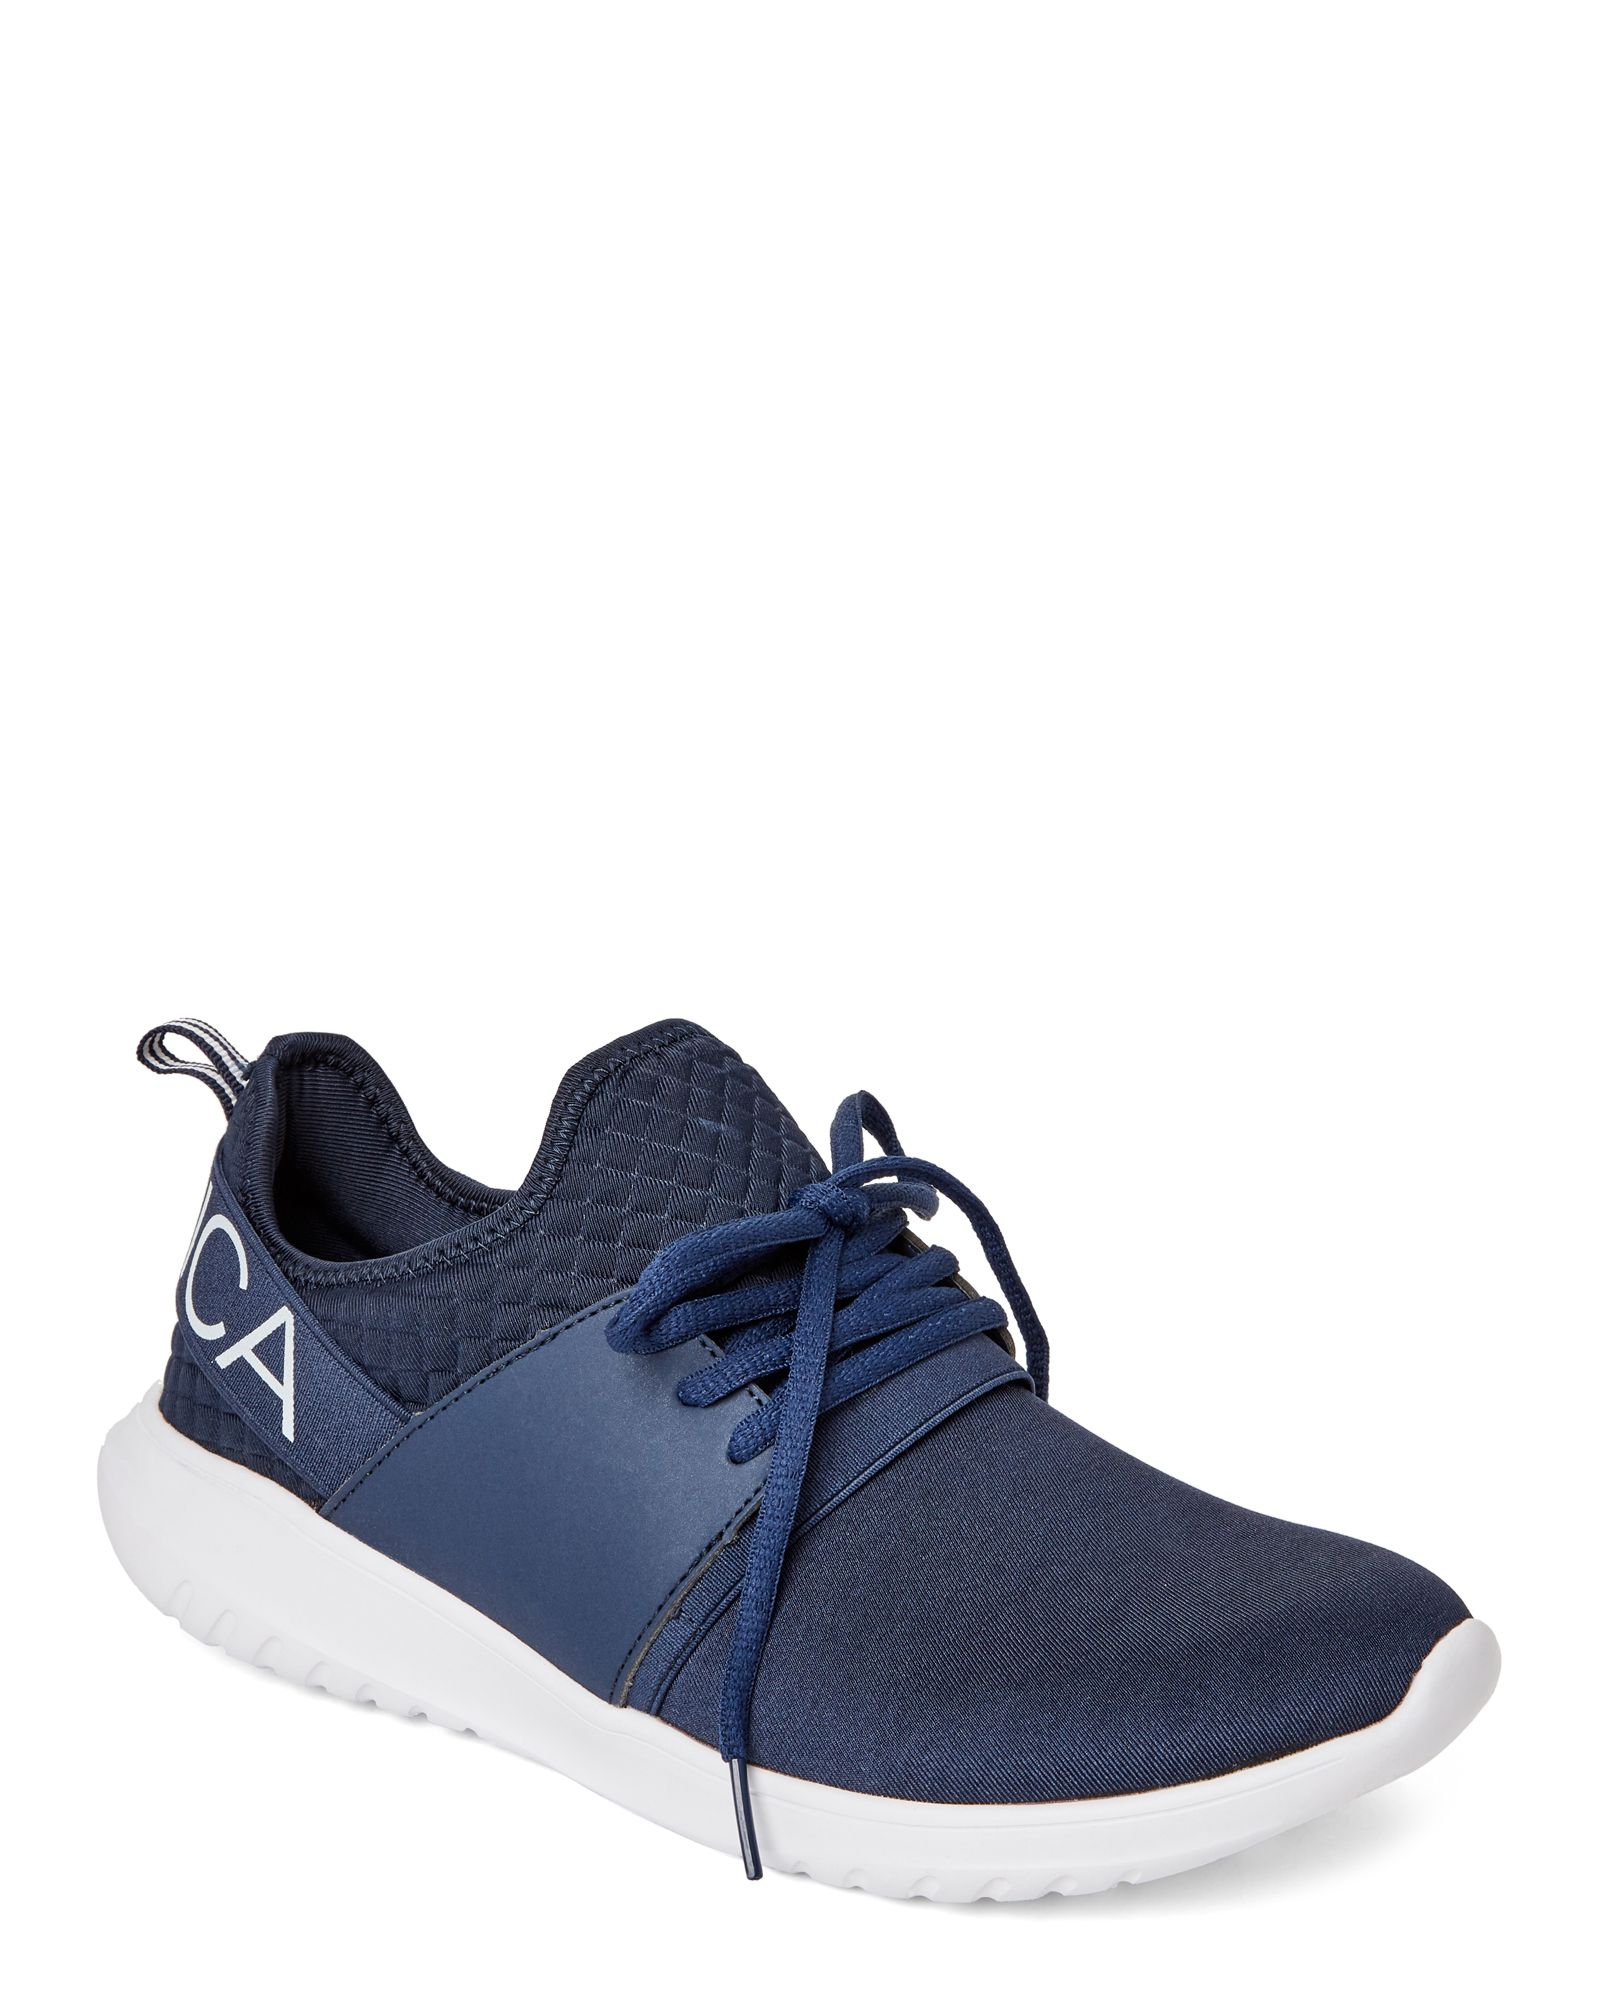 b60c9e52db44e Navy Kappil Jogger Sneakers in 2019 | *Apparel & Accessories ...